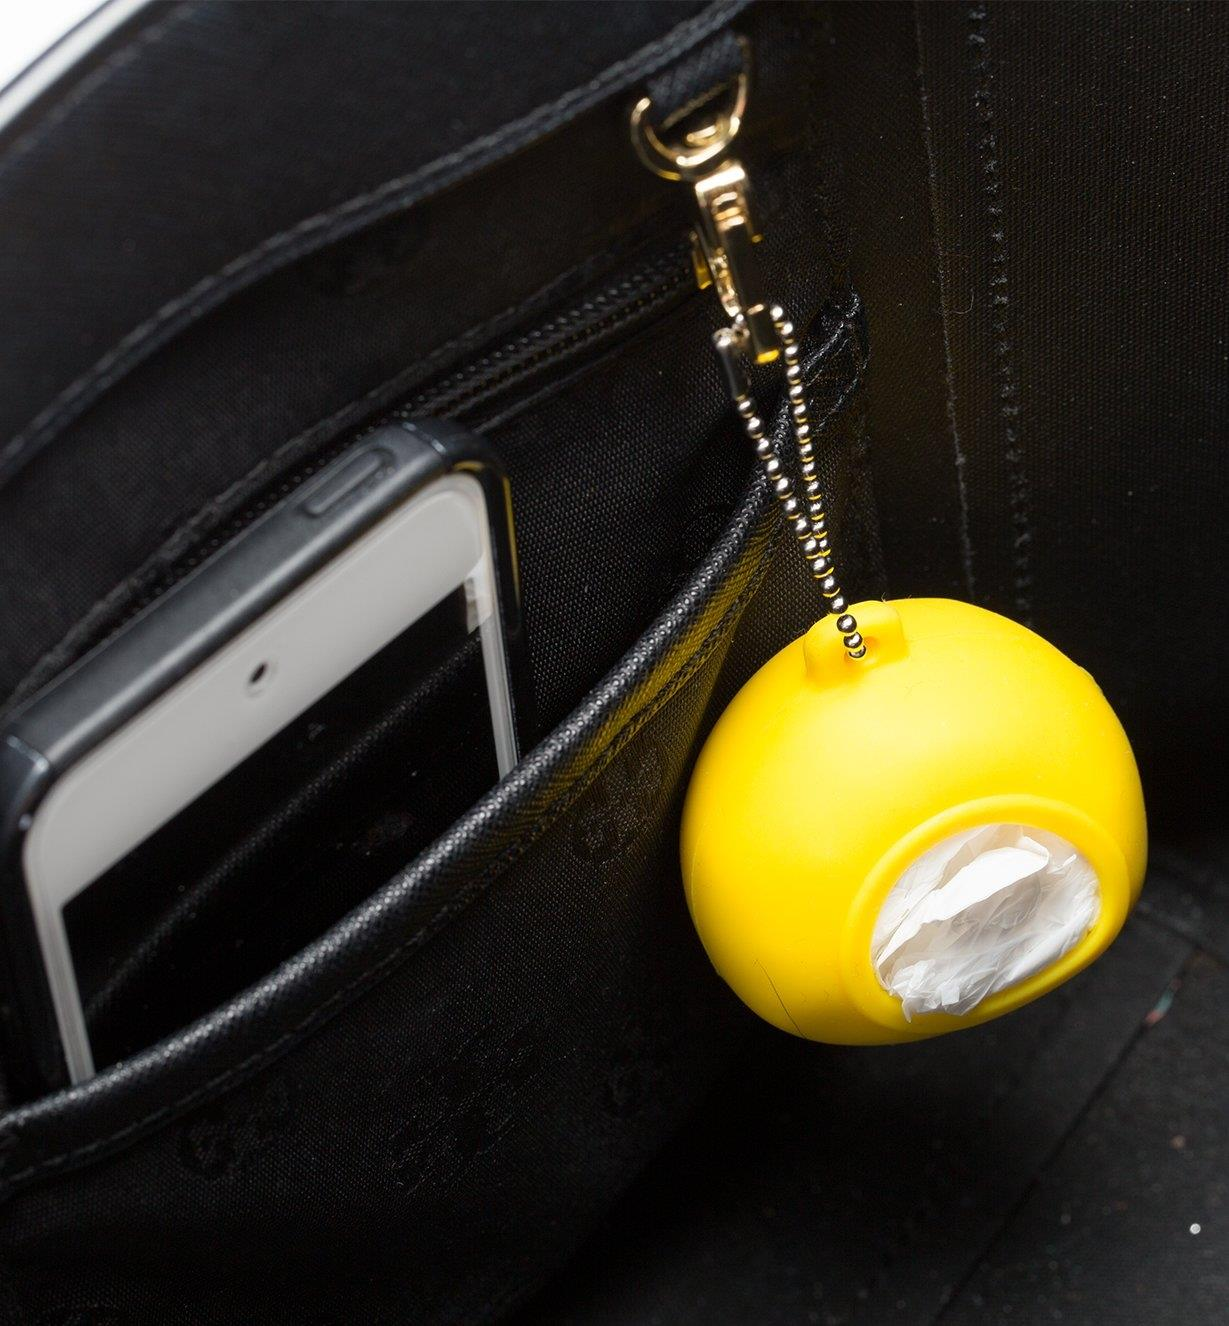 A Shopping Bag Pod attached to a hook inside a purse